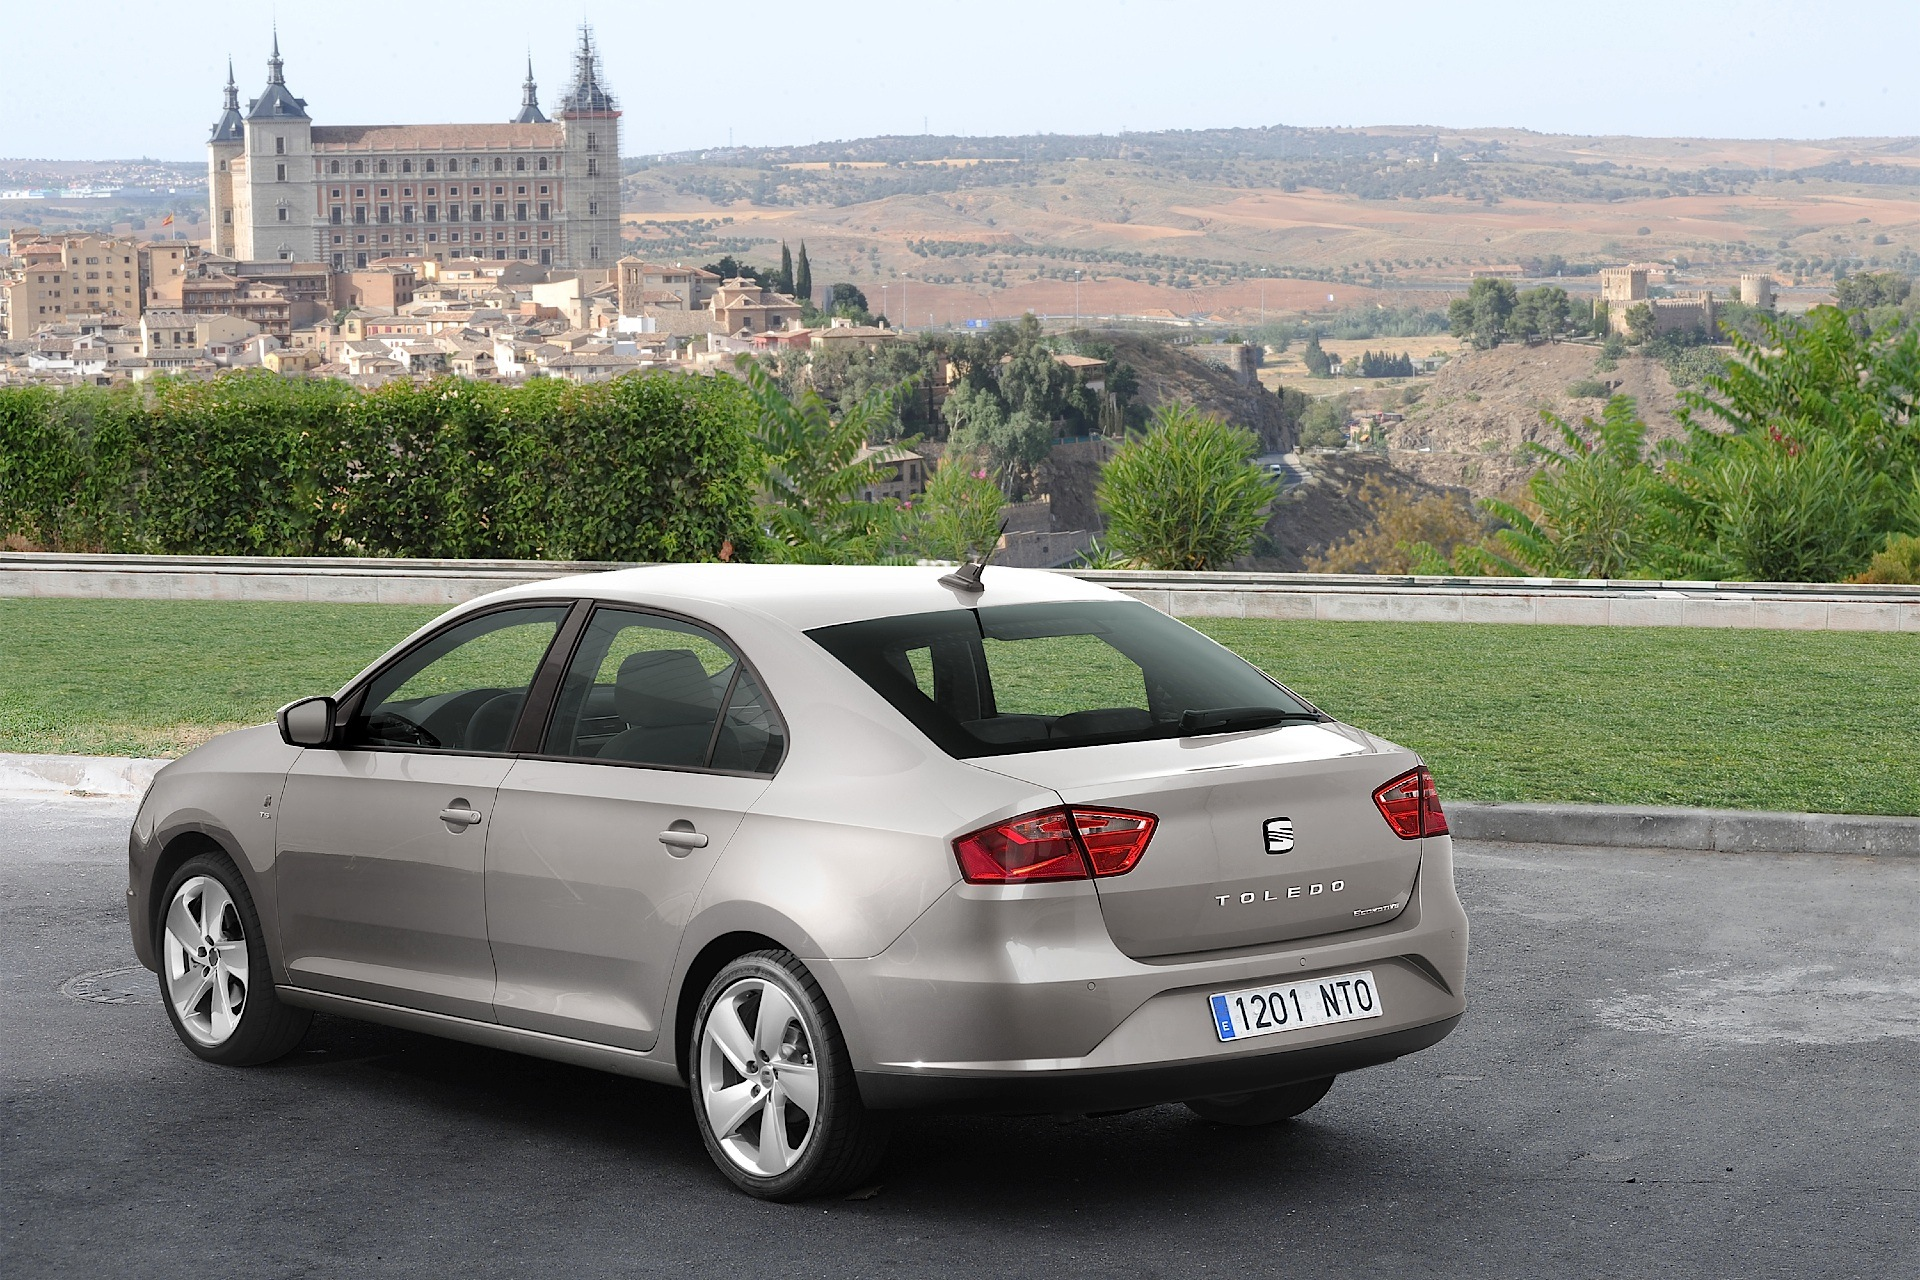 seat toledo specs photos 2012 2013 2014 2015 2016 2017 2018 autoevolution. Black Bedroom Furniture Sets. Home Design Ideas